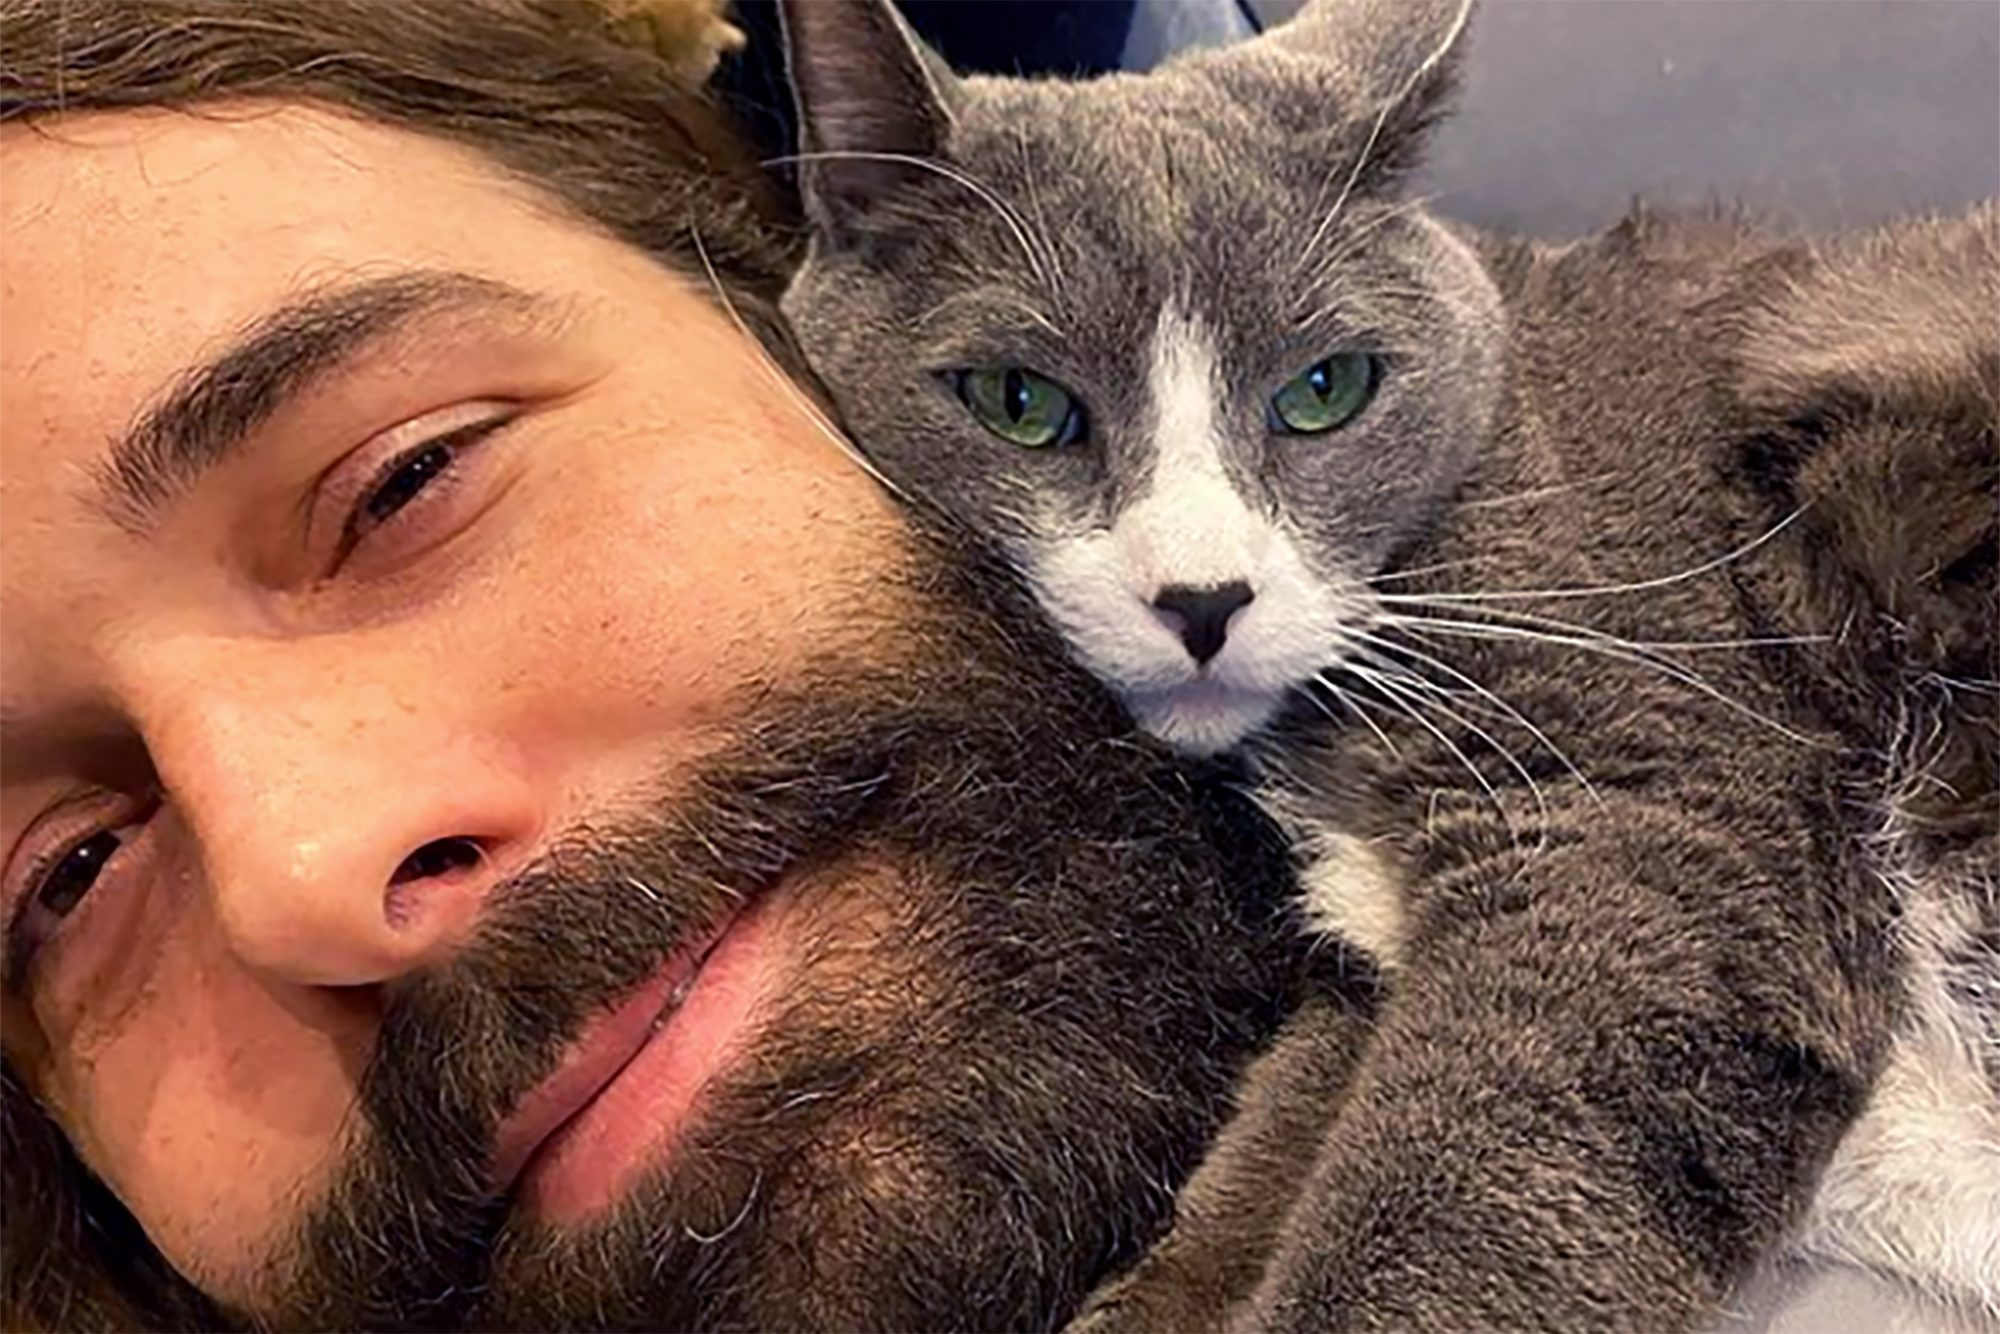 Jonathan Van Ness snuggling with grey cat